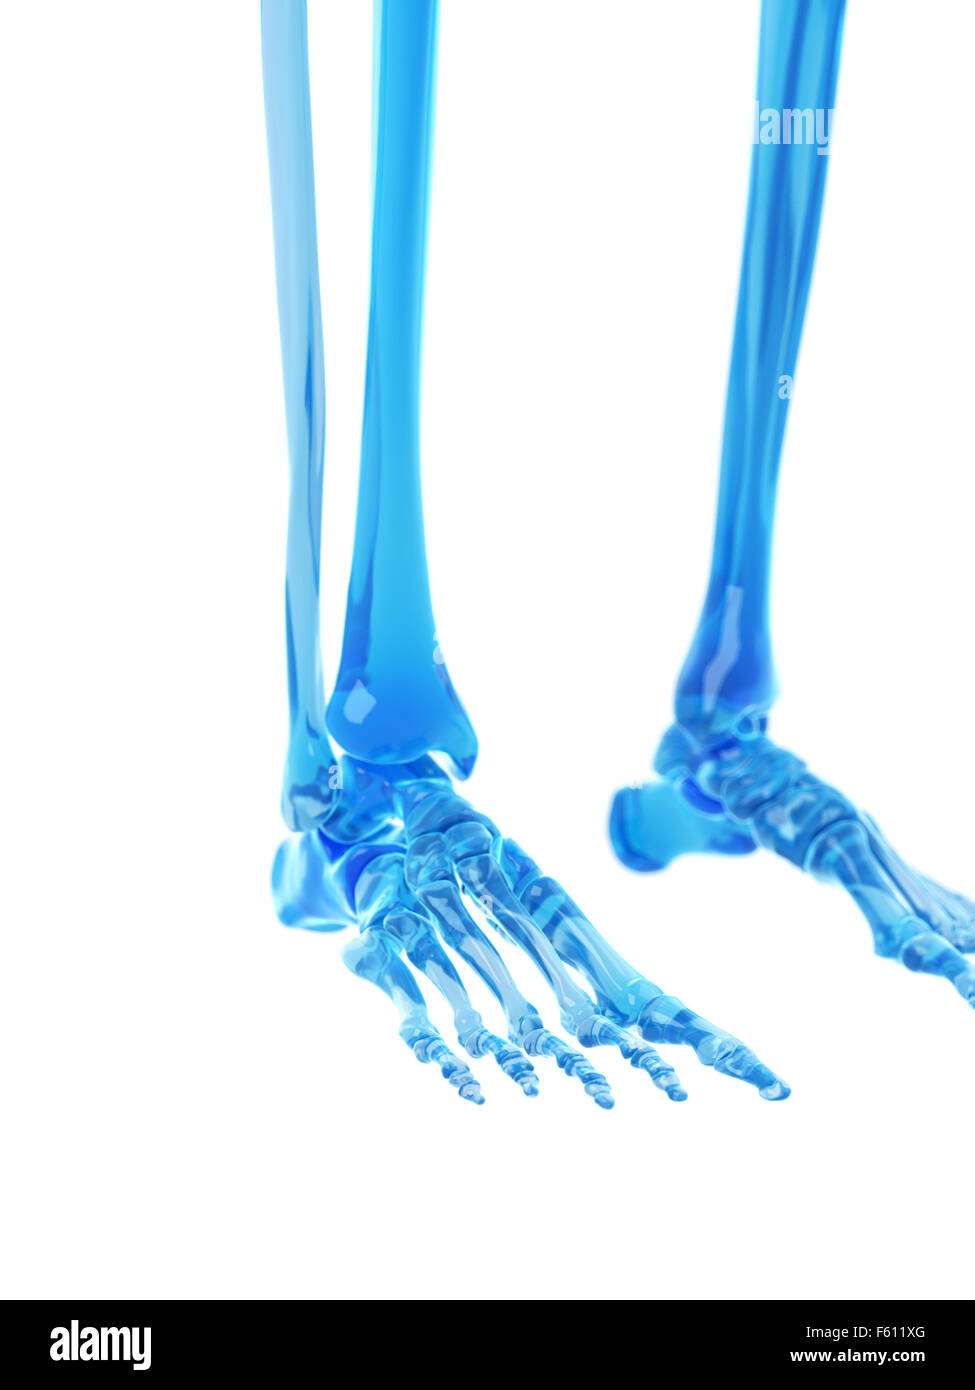 medically accurate illustration of the foot bones - Stock Image